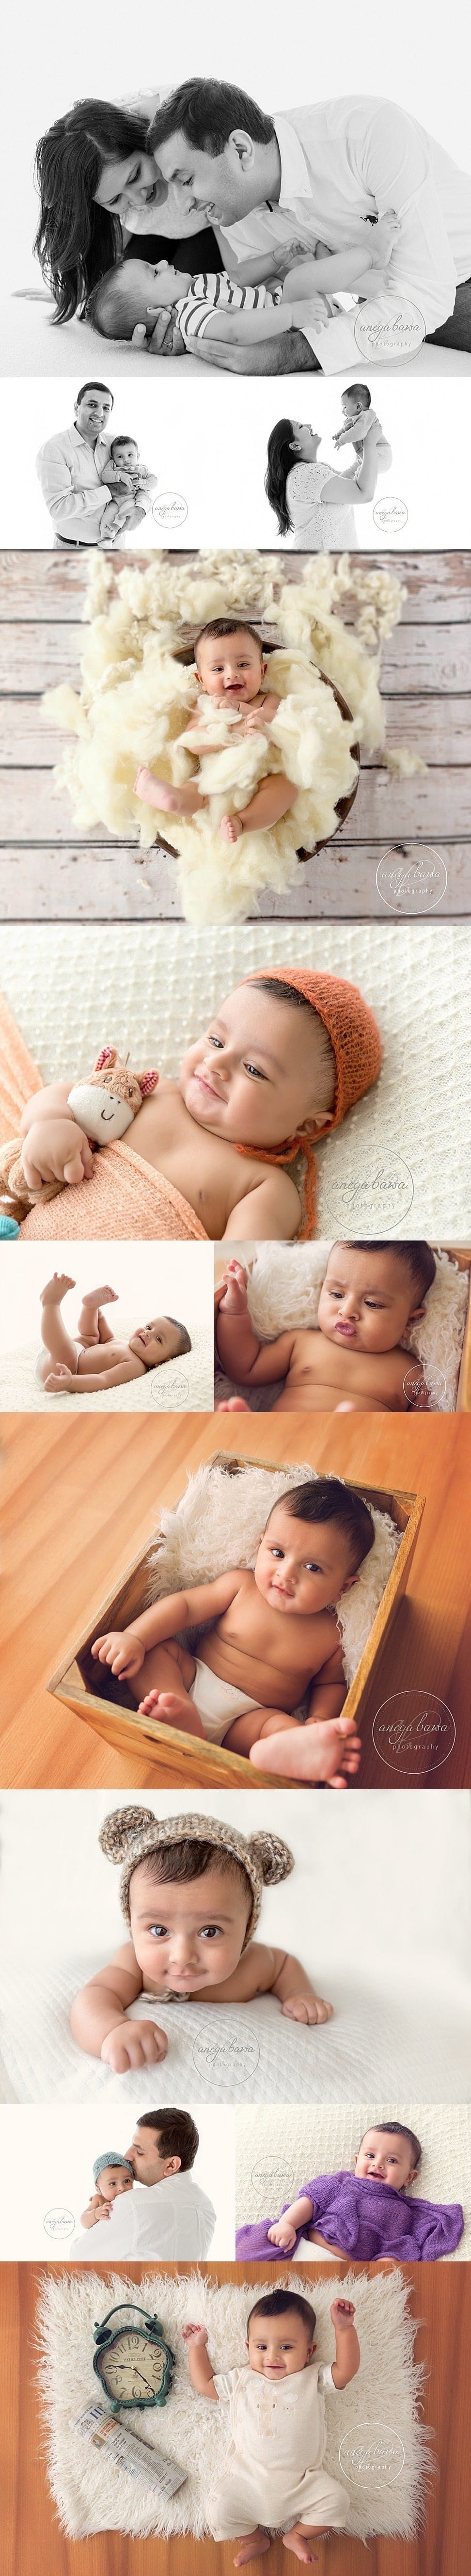 Baby Photoshoot Delhi Gurgaon Noida - Session of 4-month boy